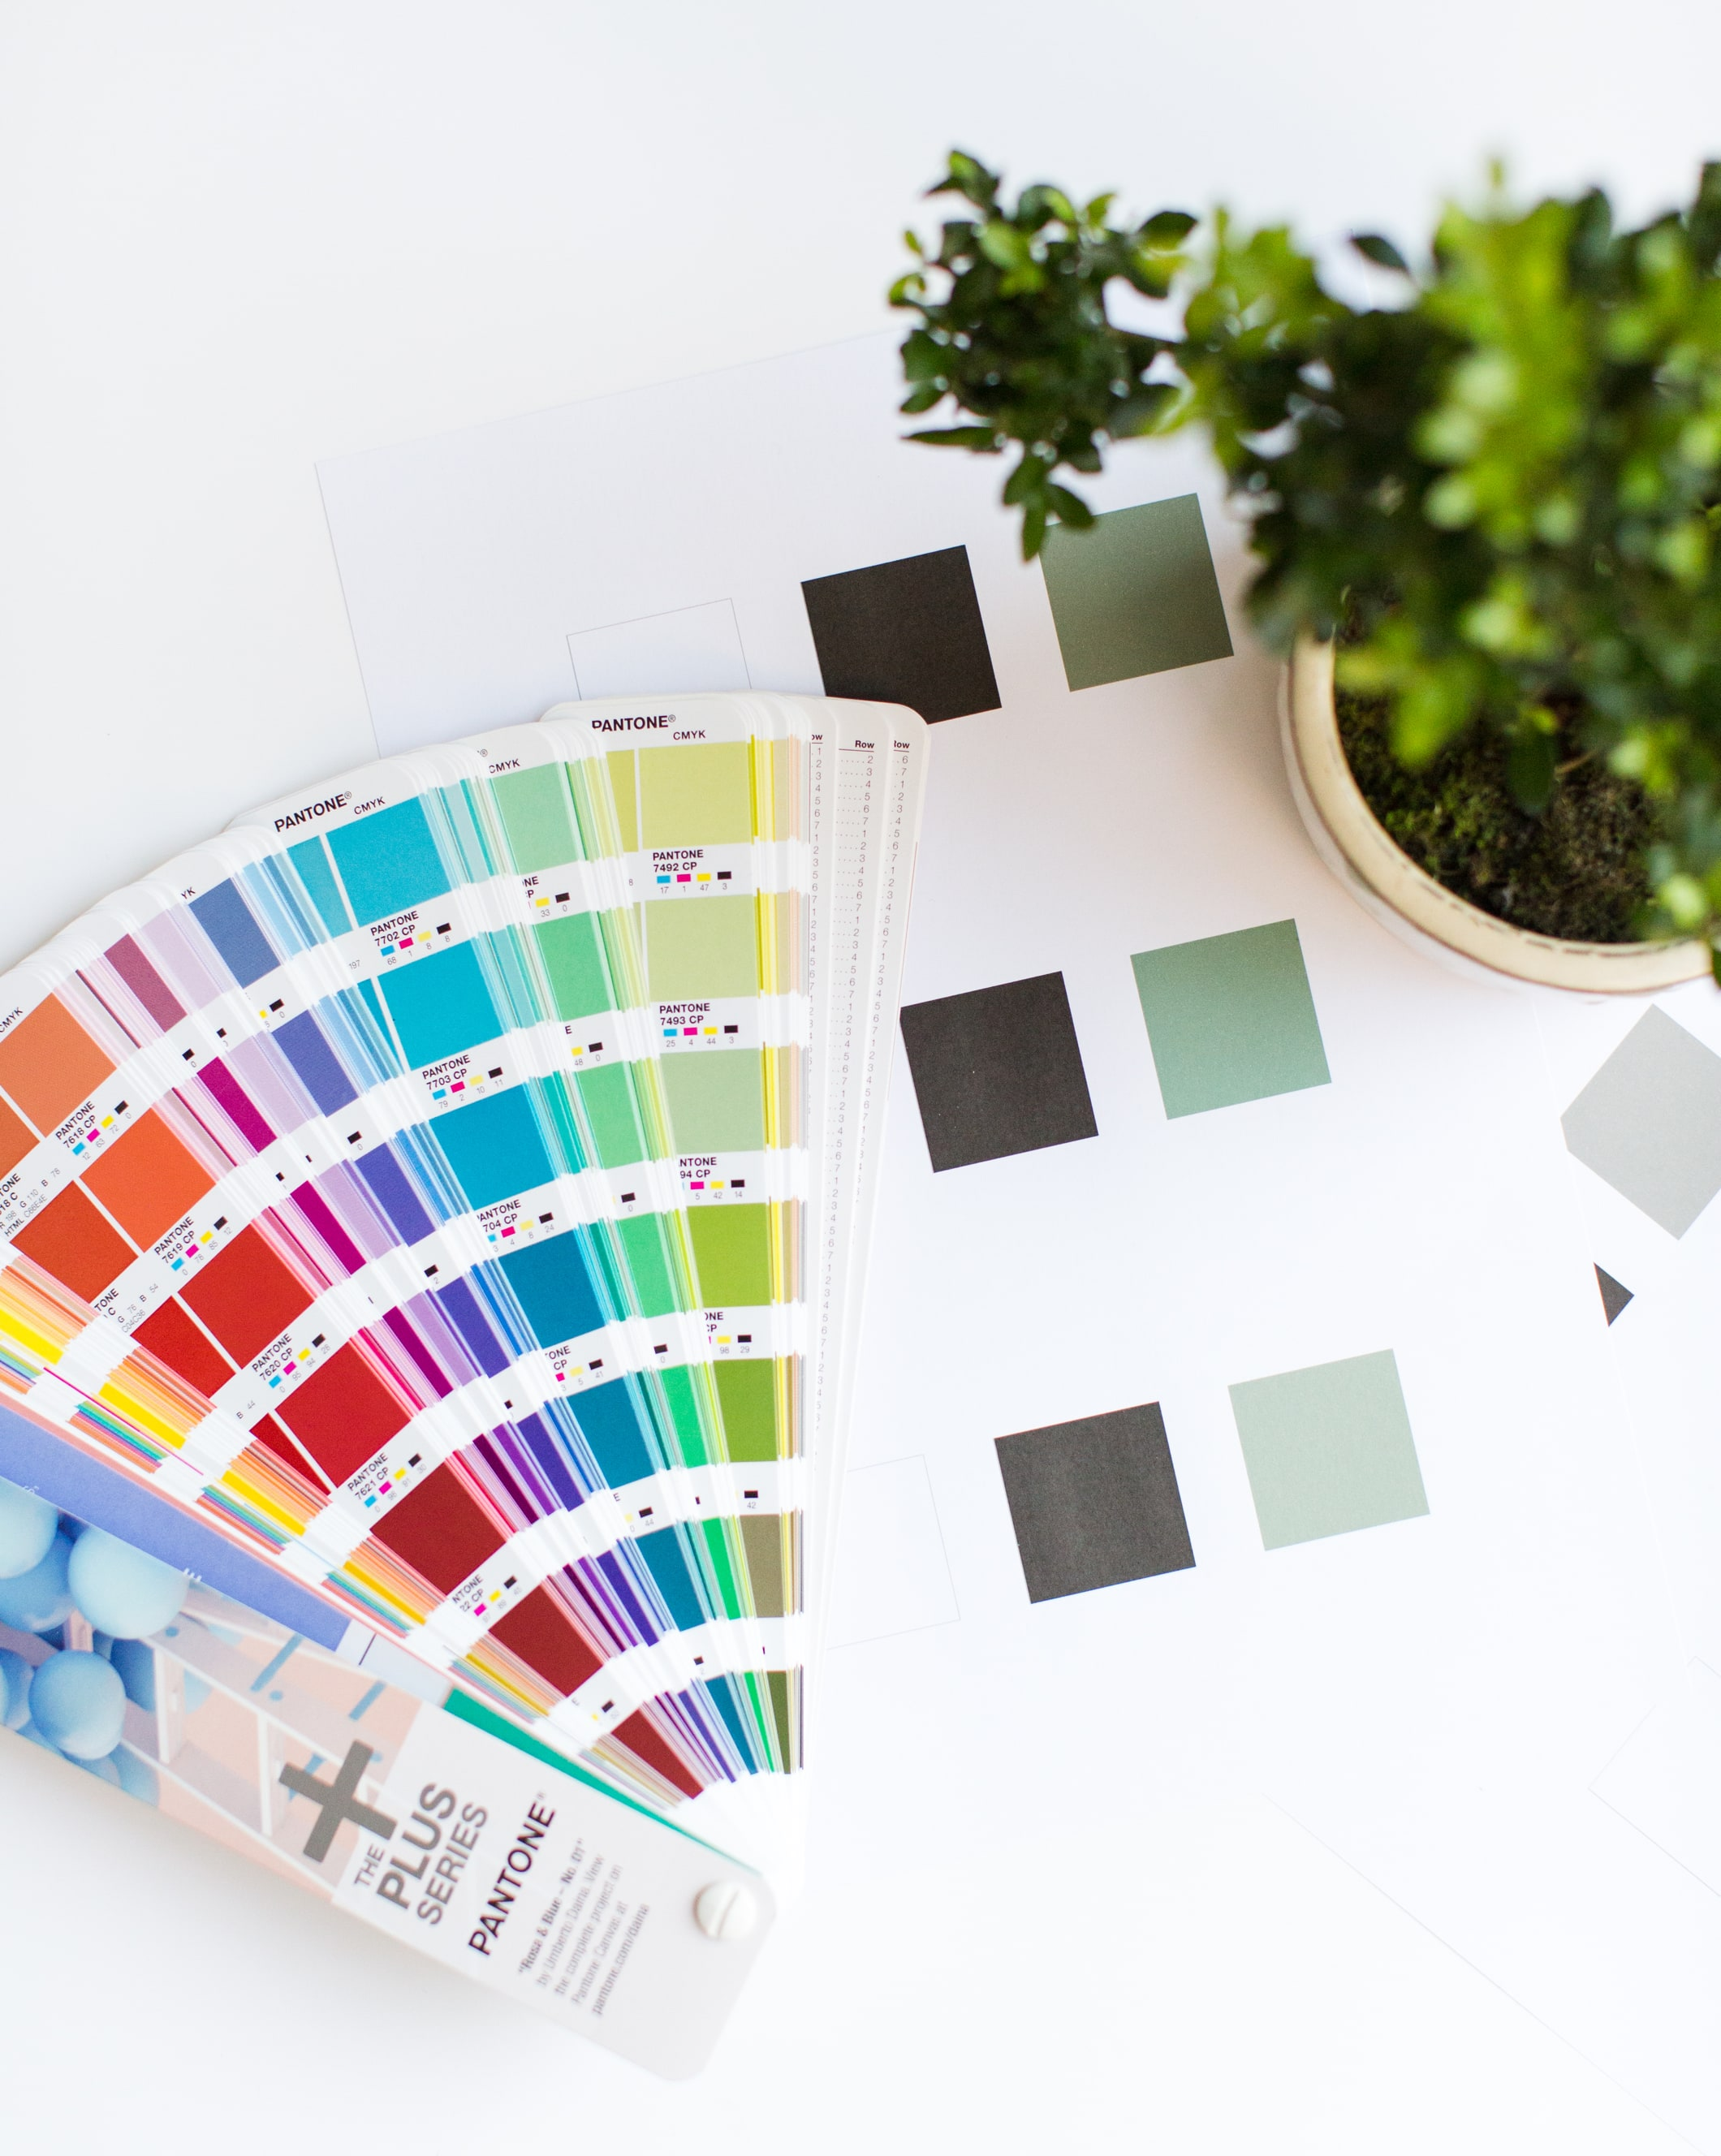 Pantone swatches fan, colour palettes and bonsai tree branding atmosphere